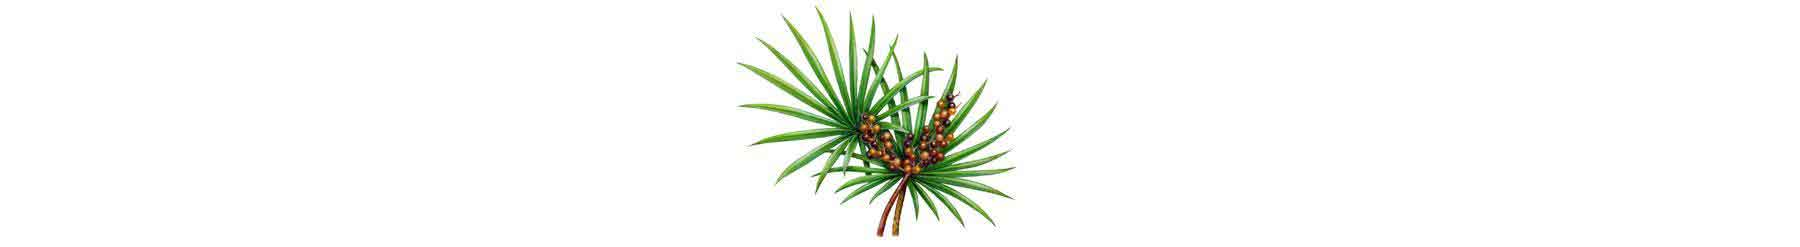 saw palmetto for dht hair loss